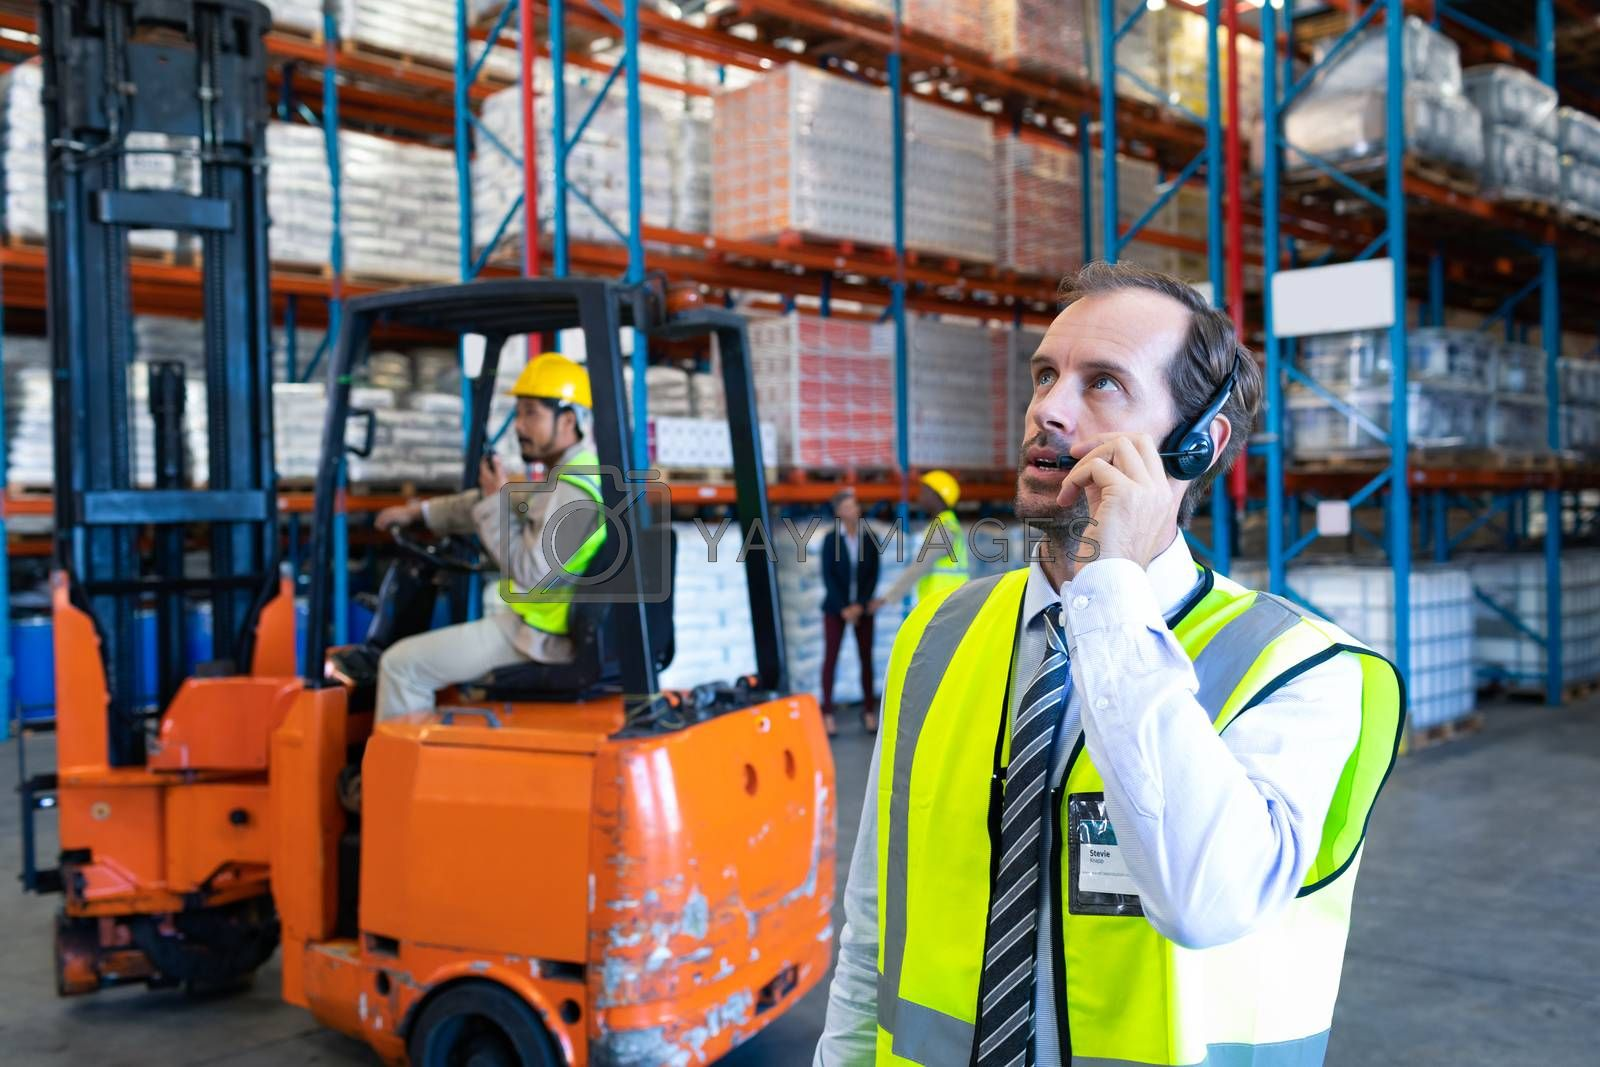 Front view of handsome Caucasian male supervisor talking on headset in warehouse. Diverse colleagues working in the background. This is a freight transportation and distribution warehouse. Industrial and industrial workers concept